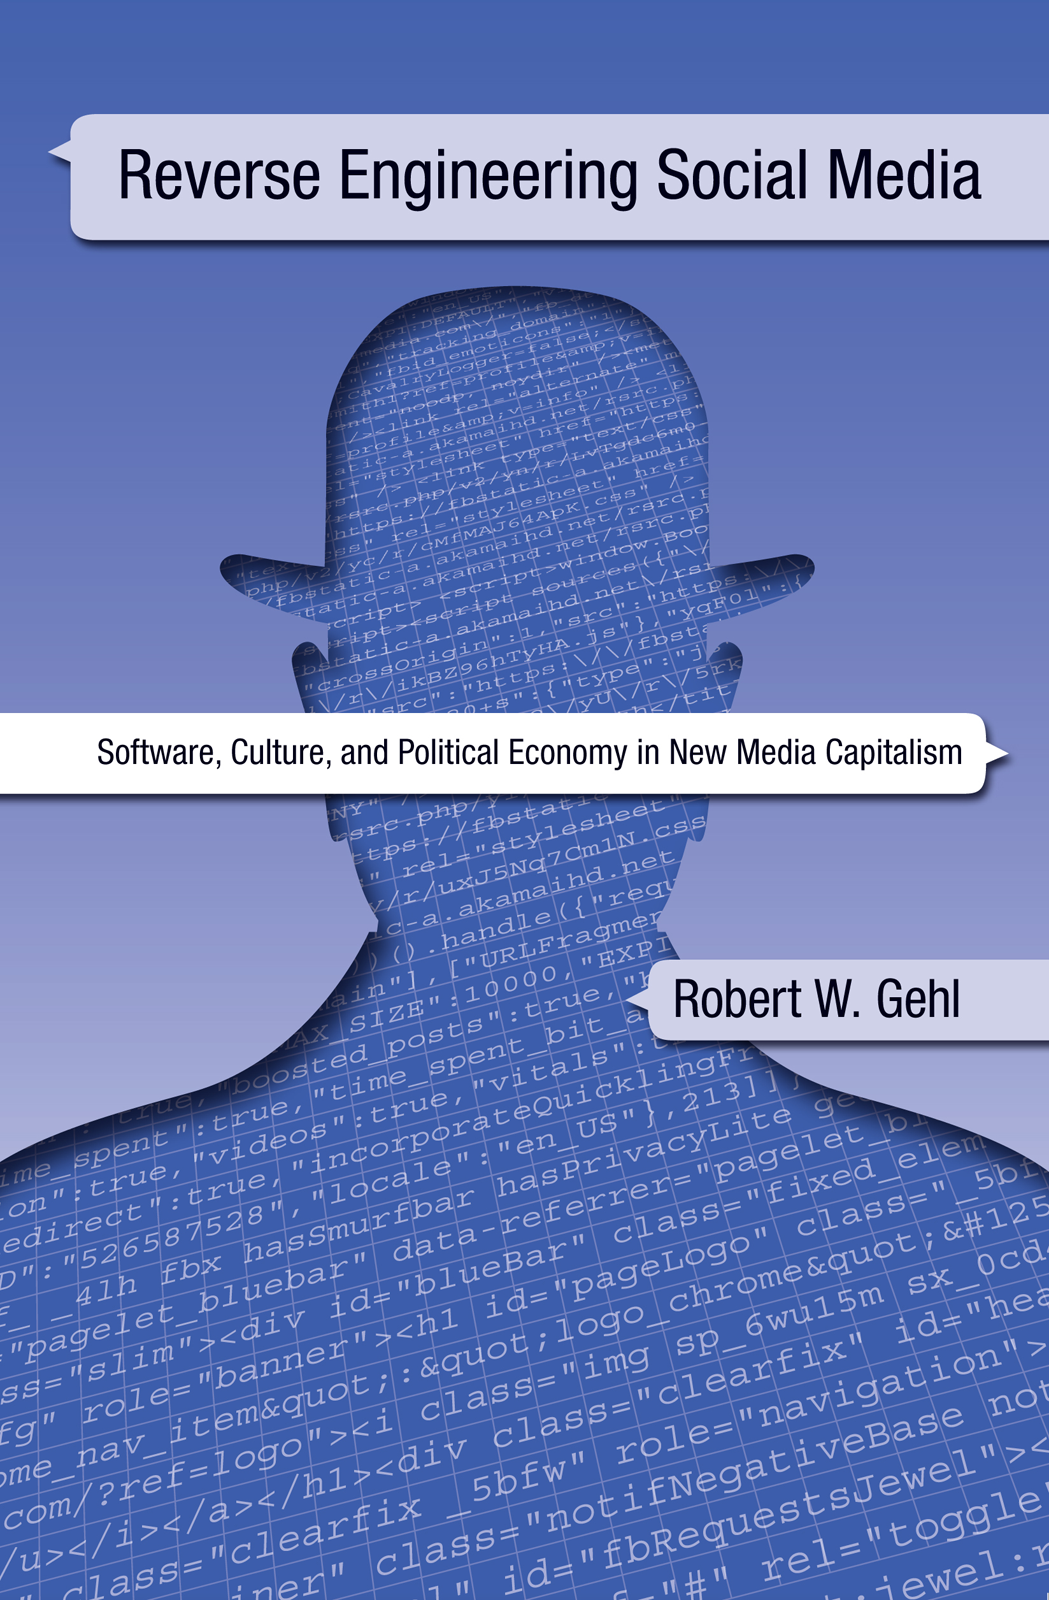 The cover of Reverse Engineering Social Media, a book by Robert W. Gehl